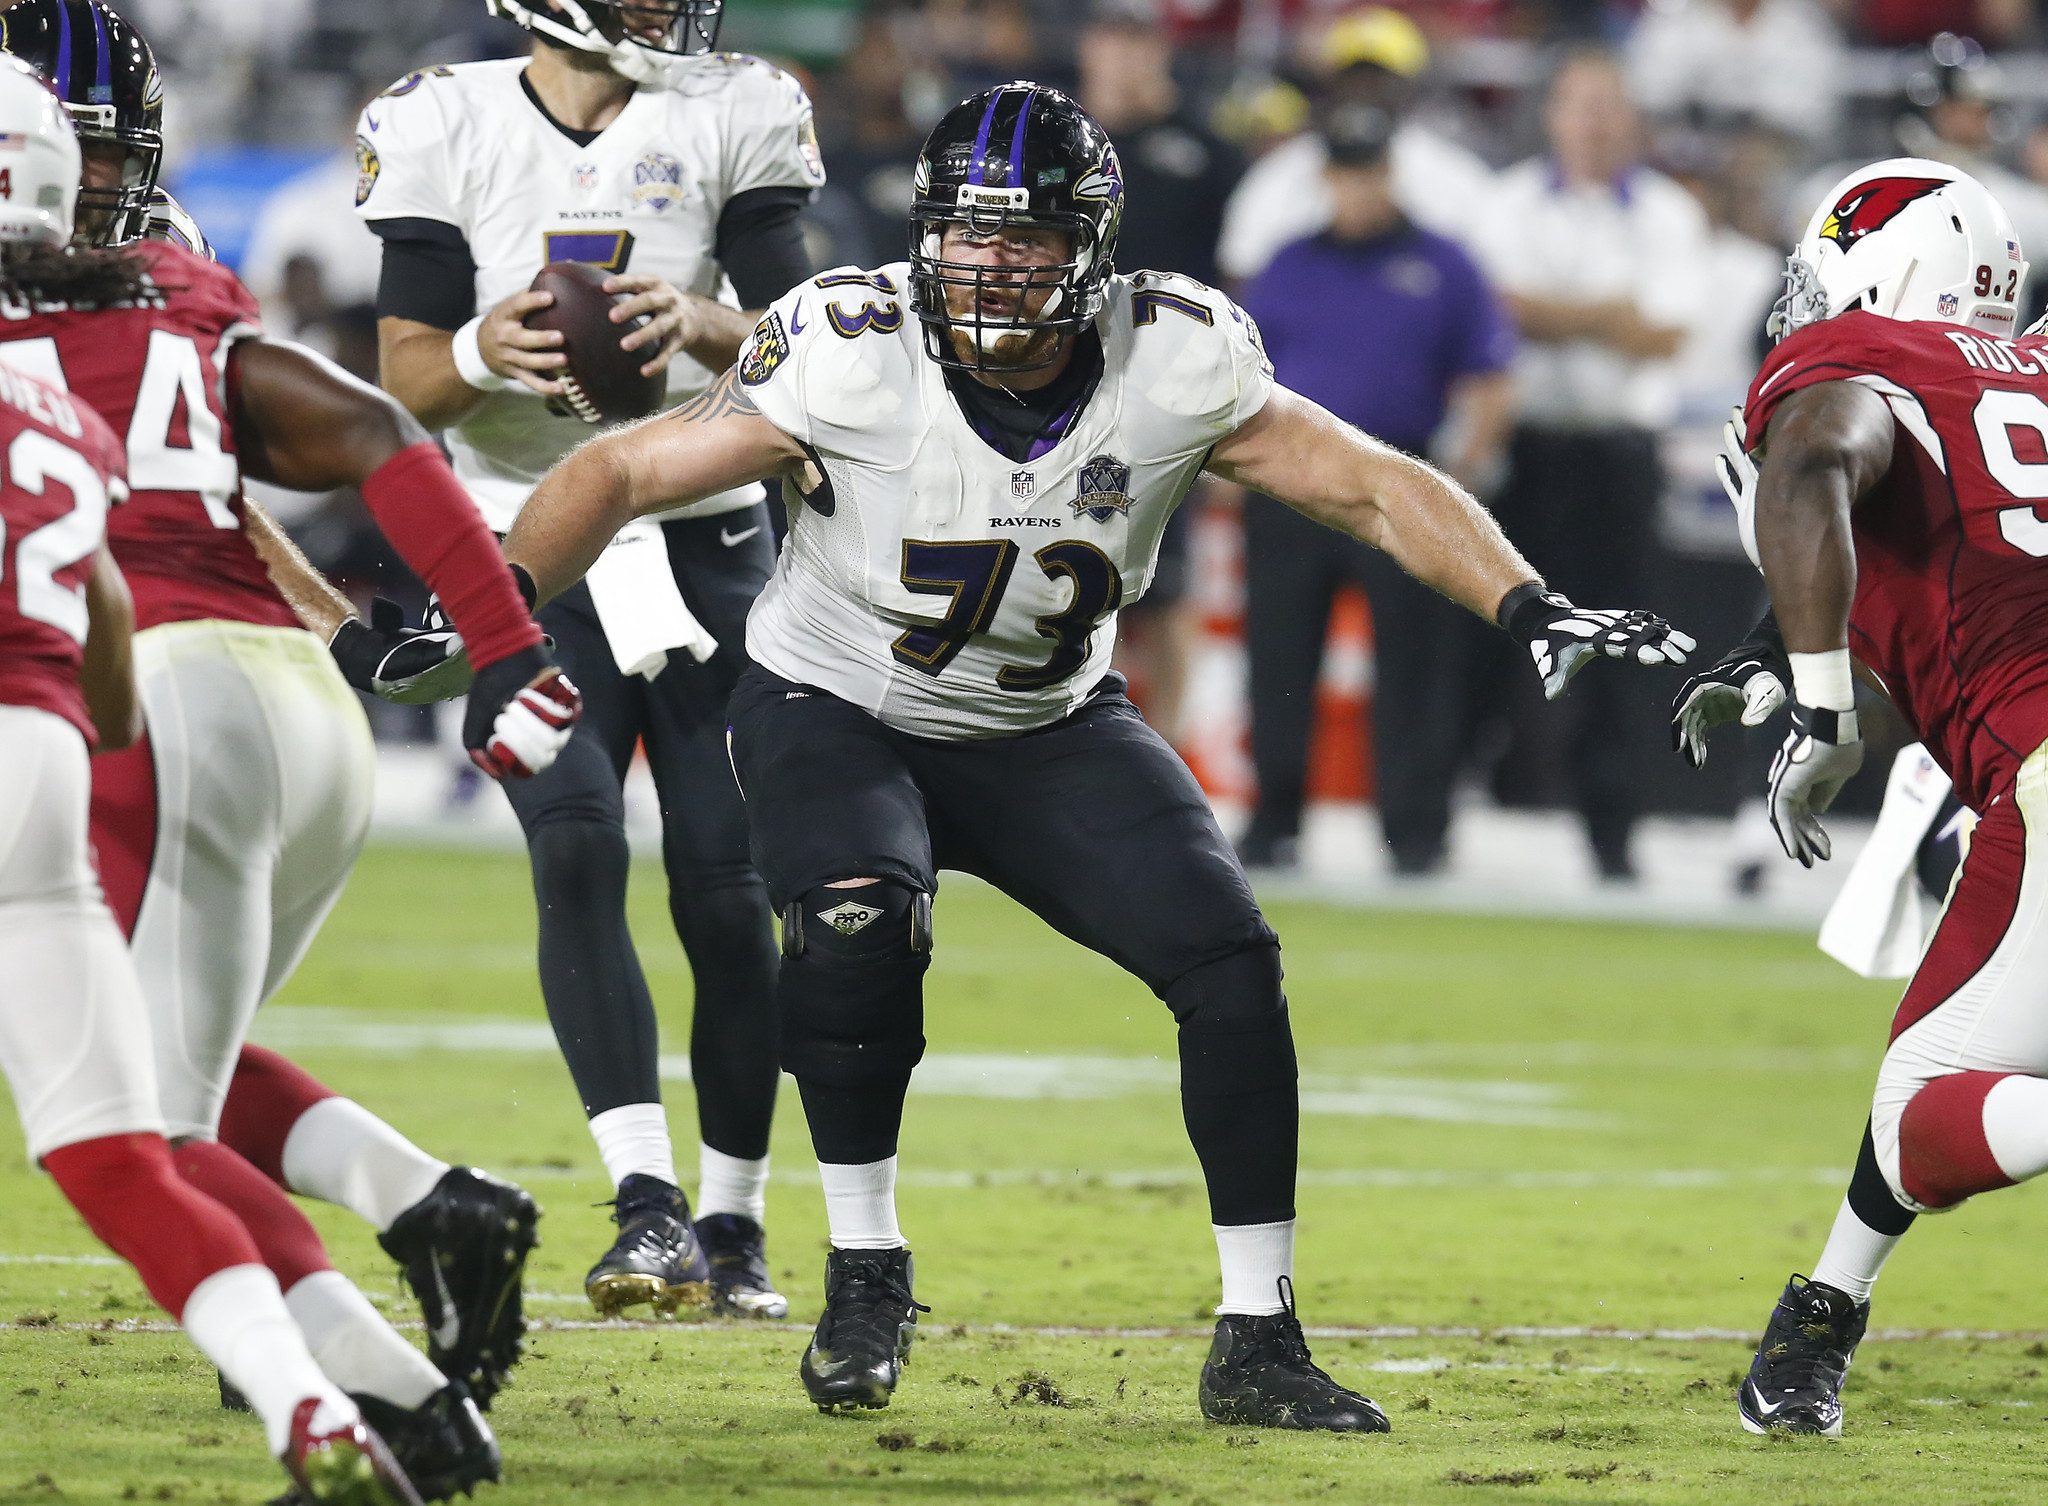 Ravens open up needed salary cap space with Marshal Yanda